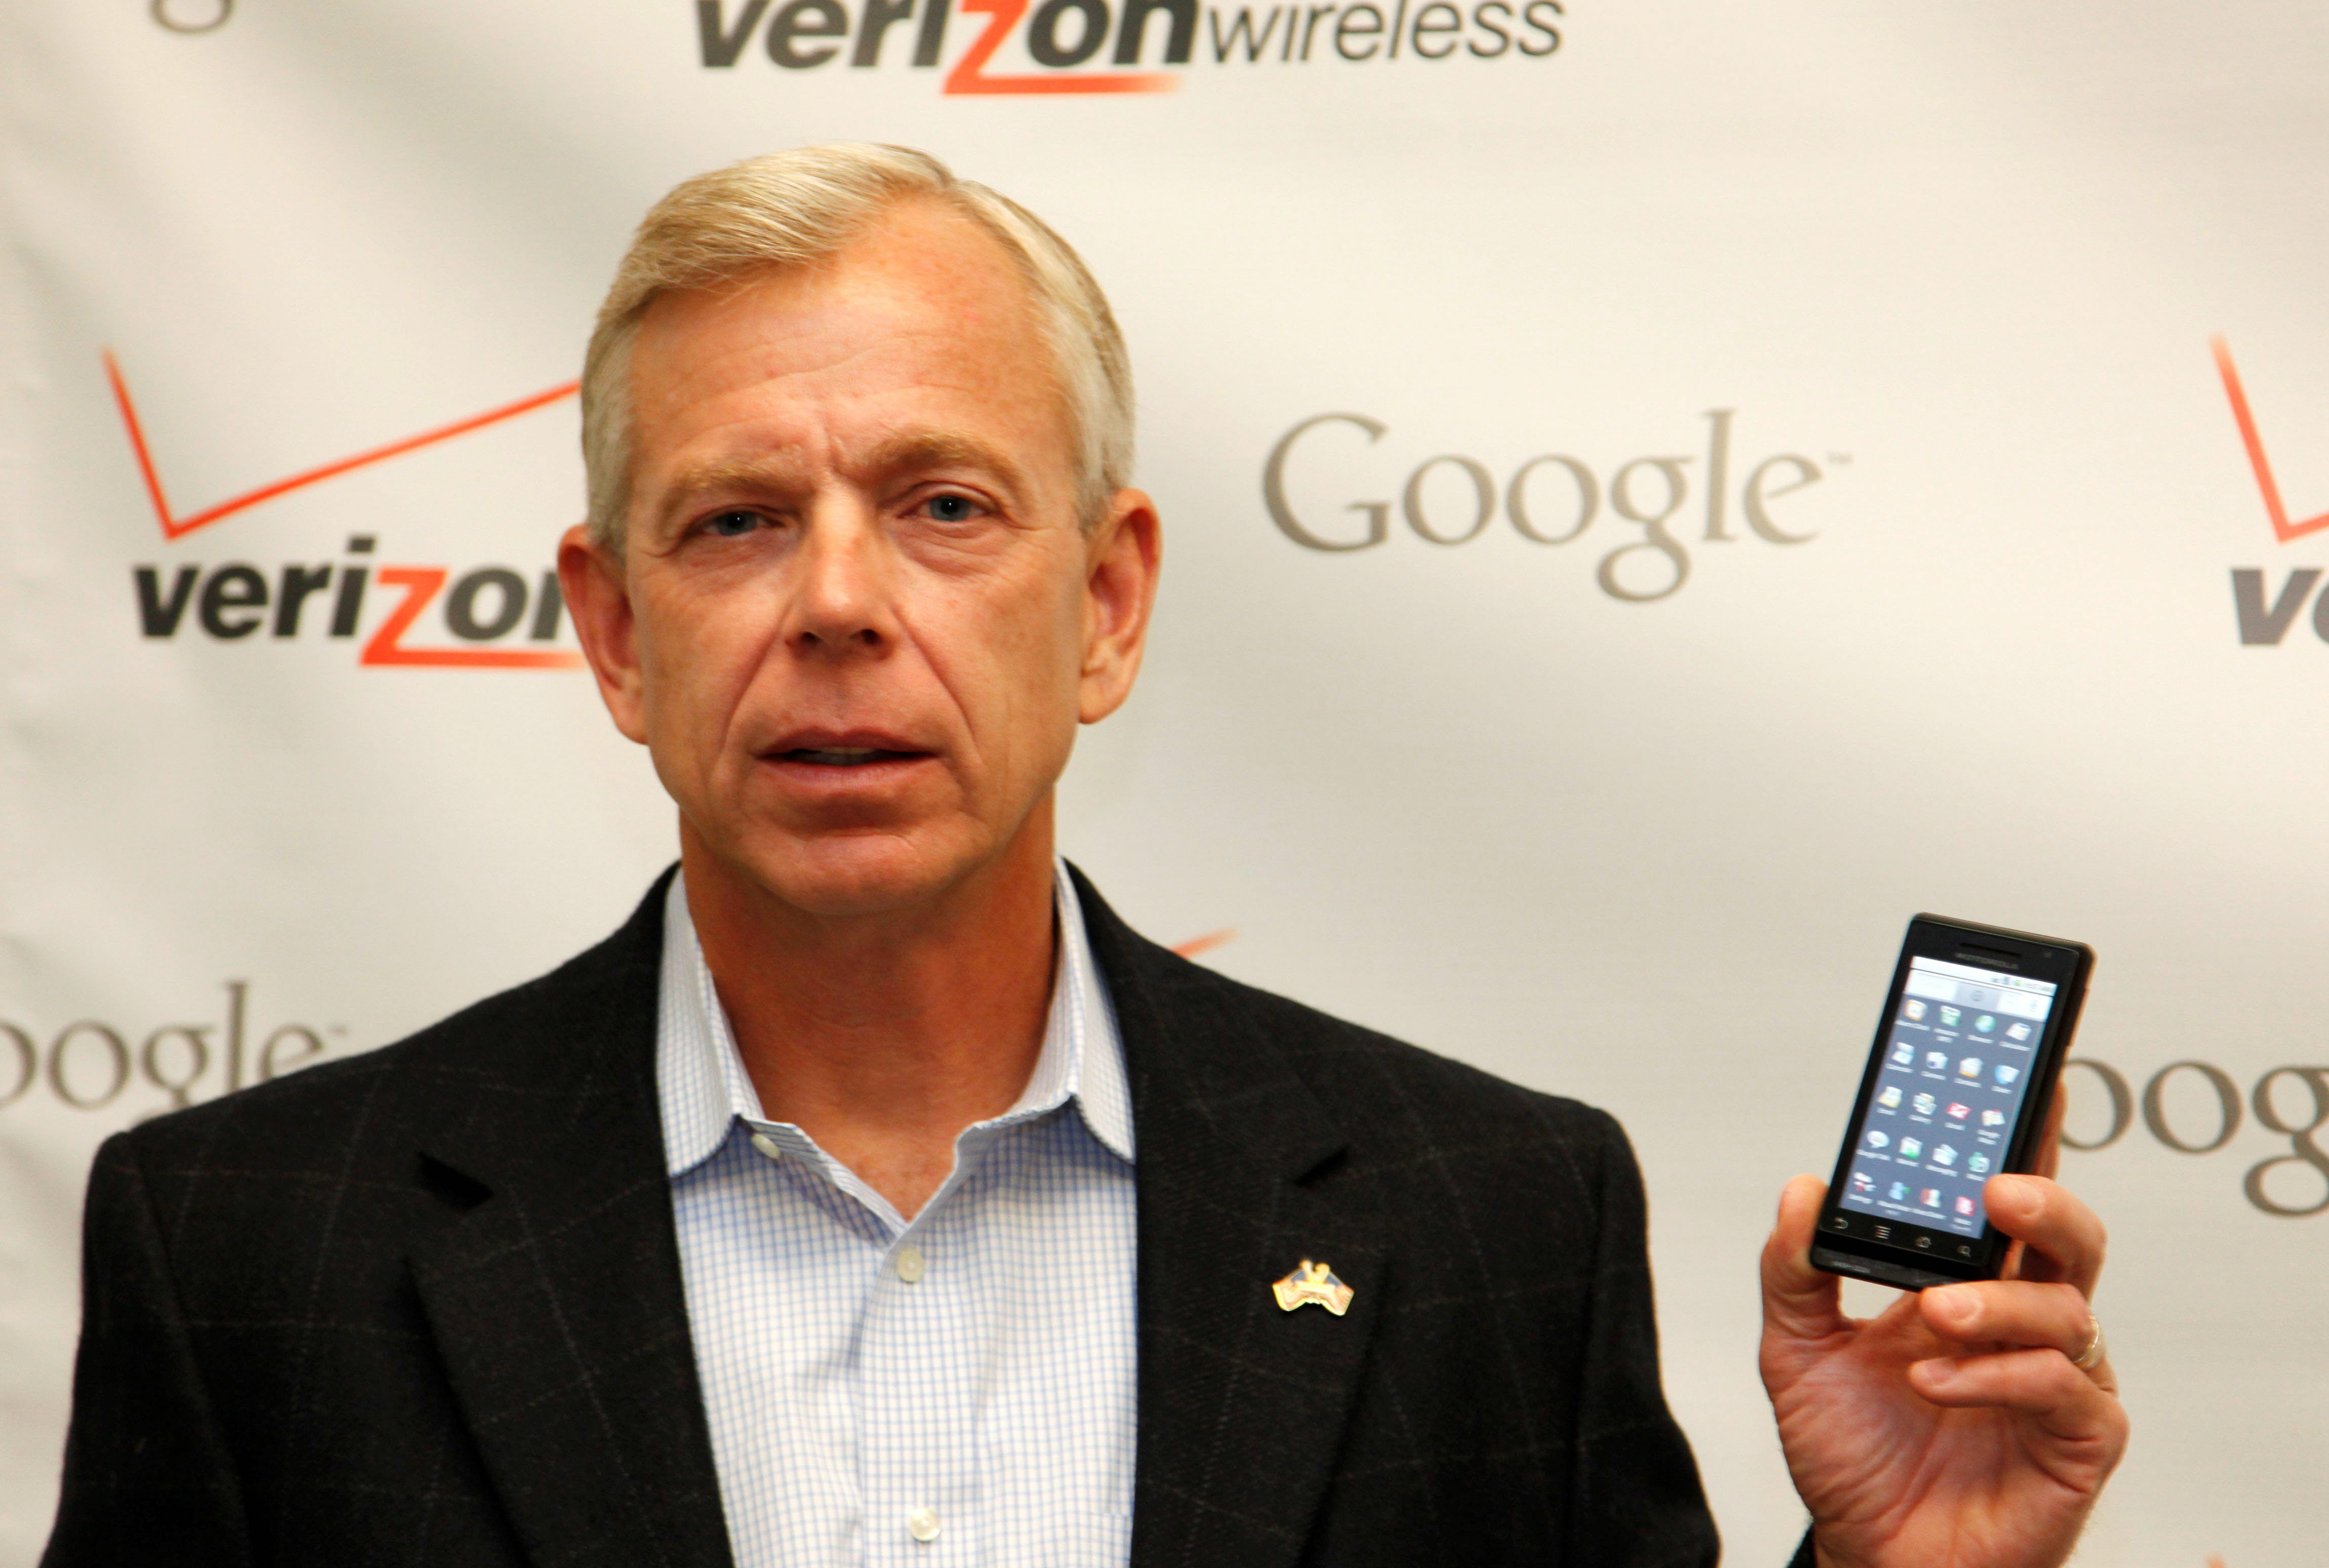 Lowell McAdam, Verizon CEO: This election 'makes me want to put my